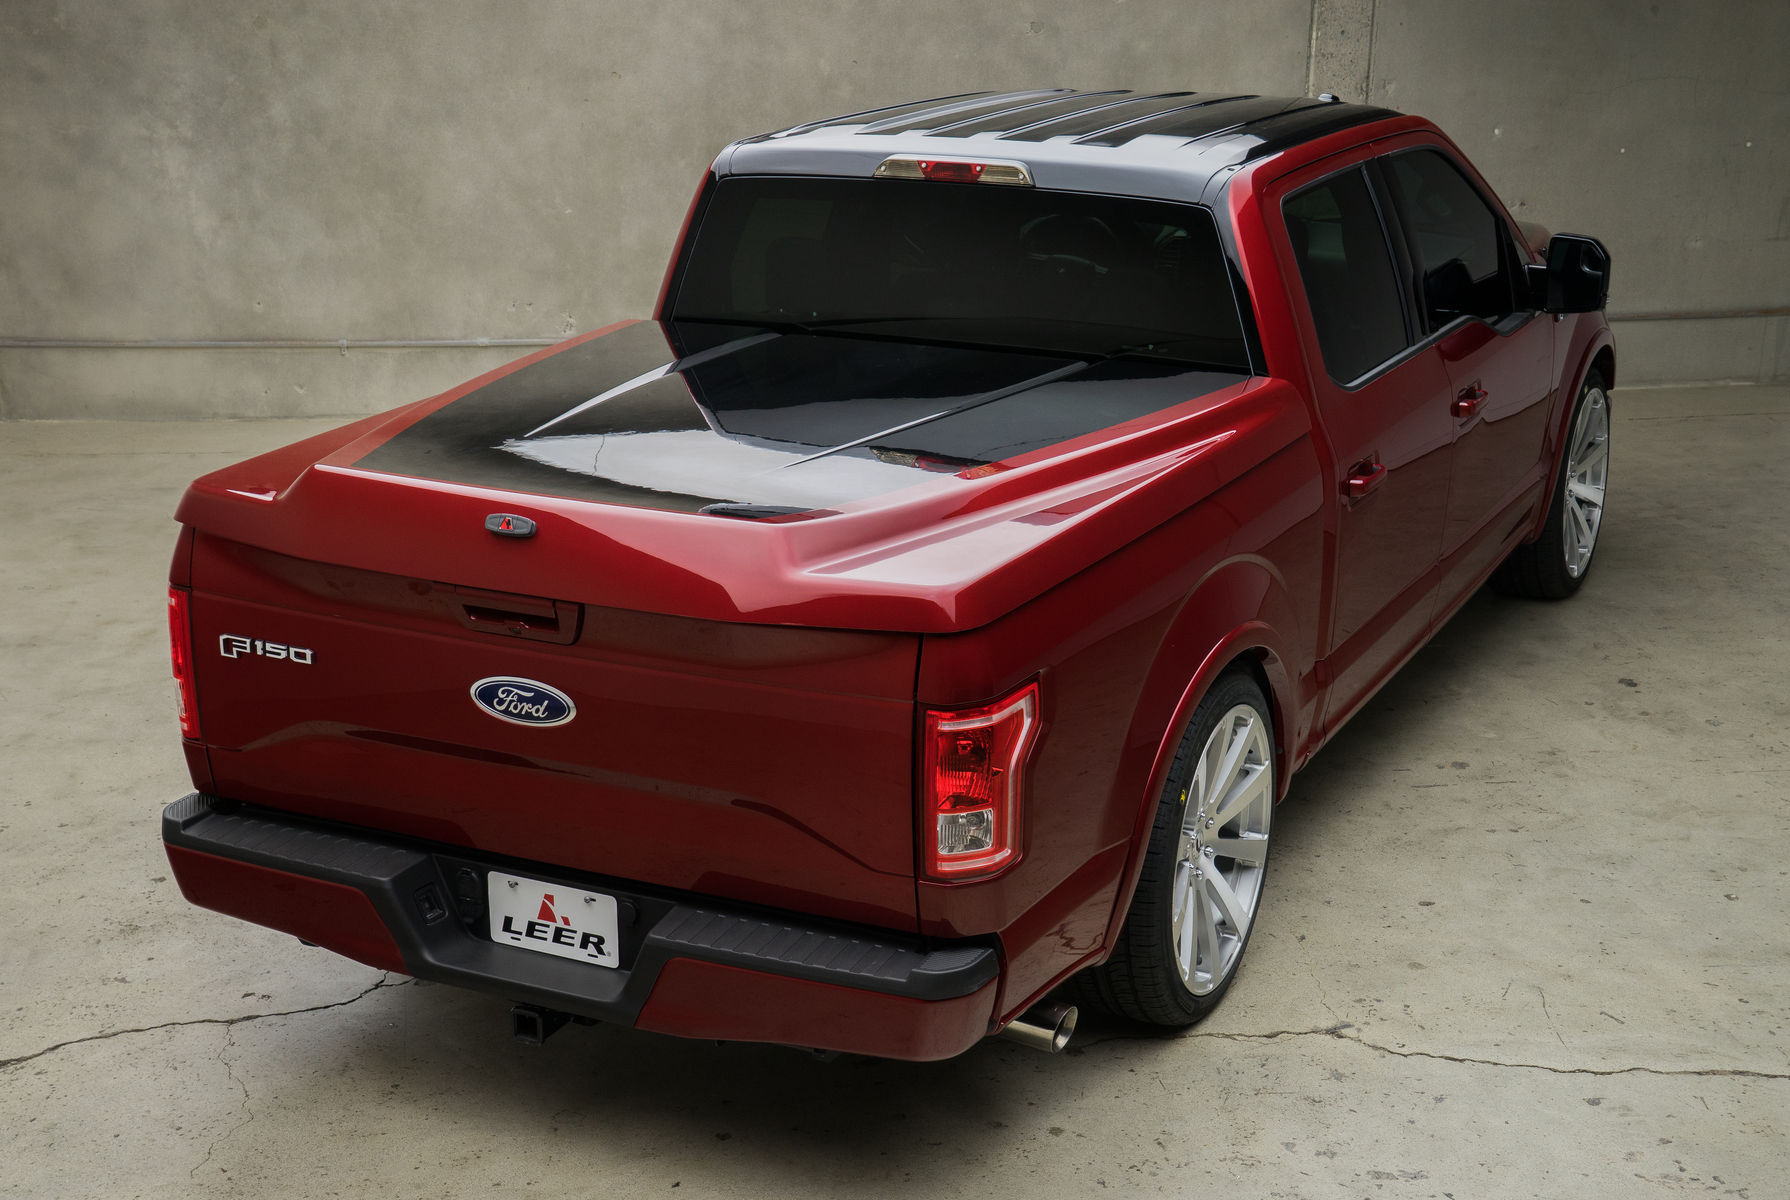 2015 Ford F-150 | 2015 Leer Ford F-150